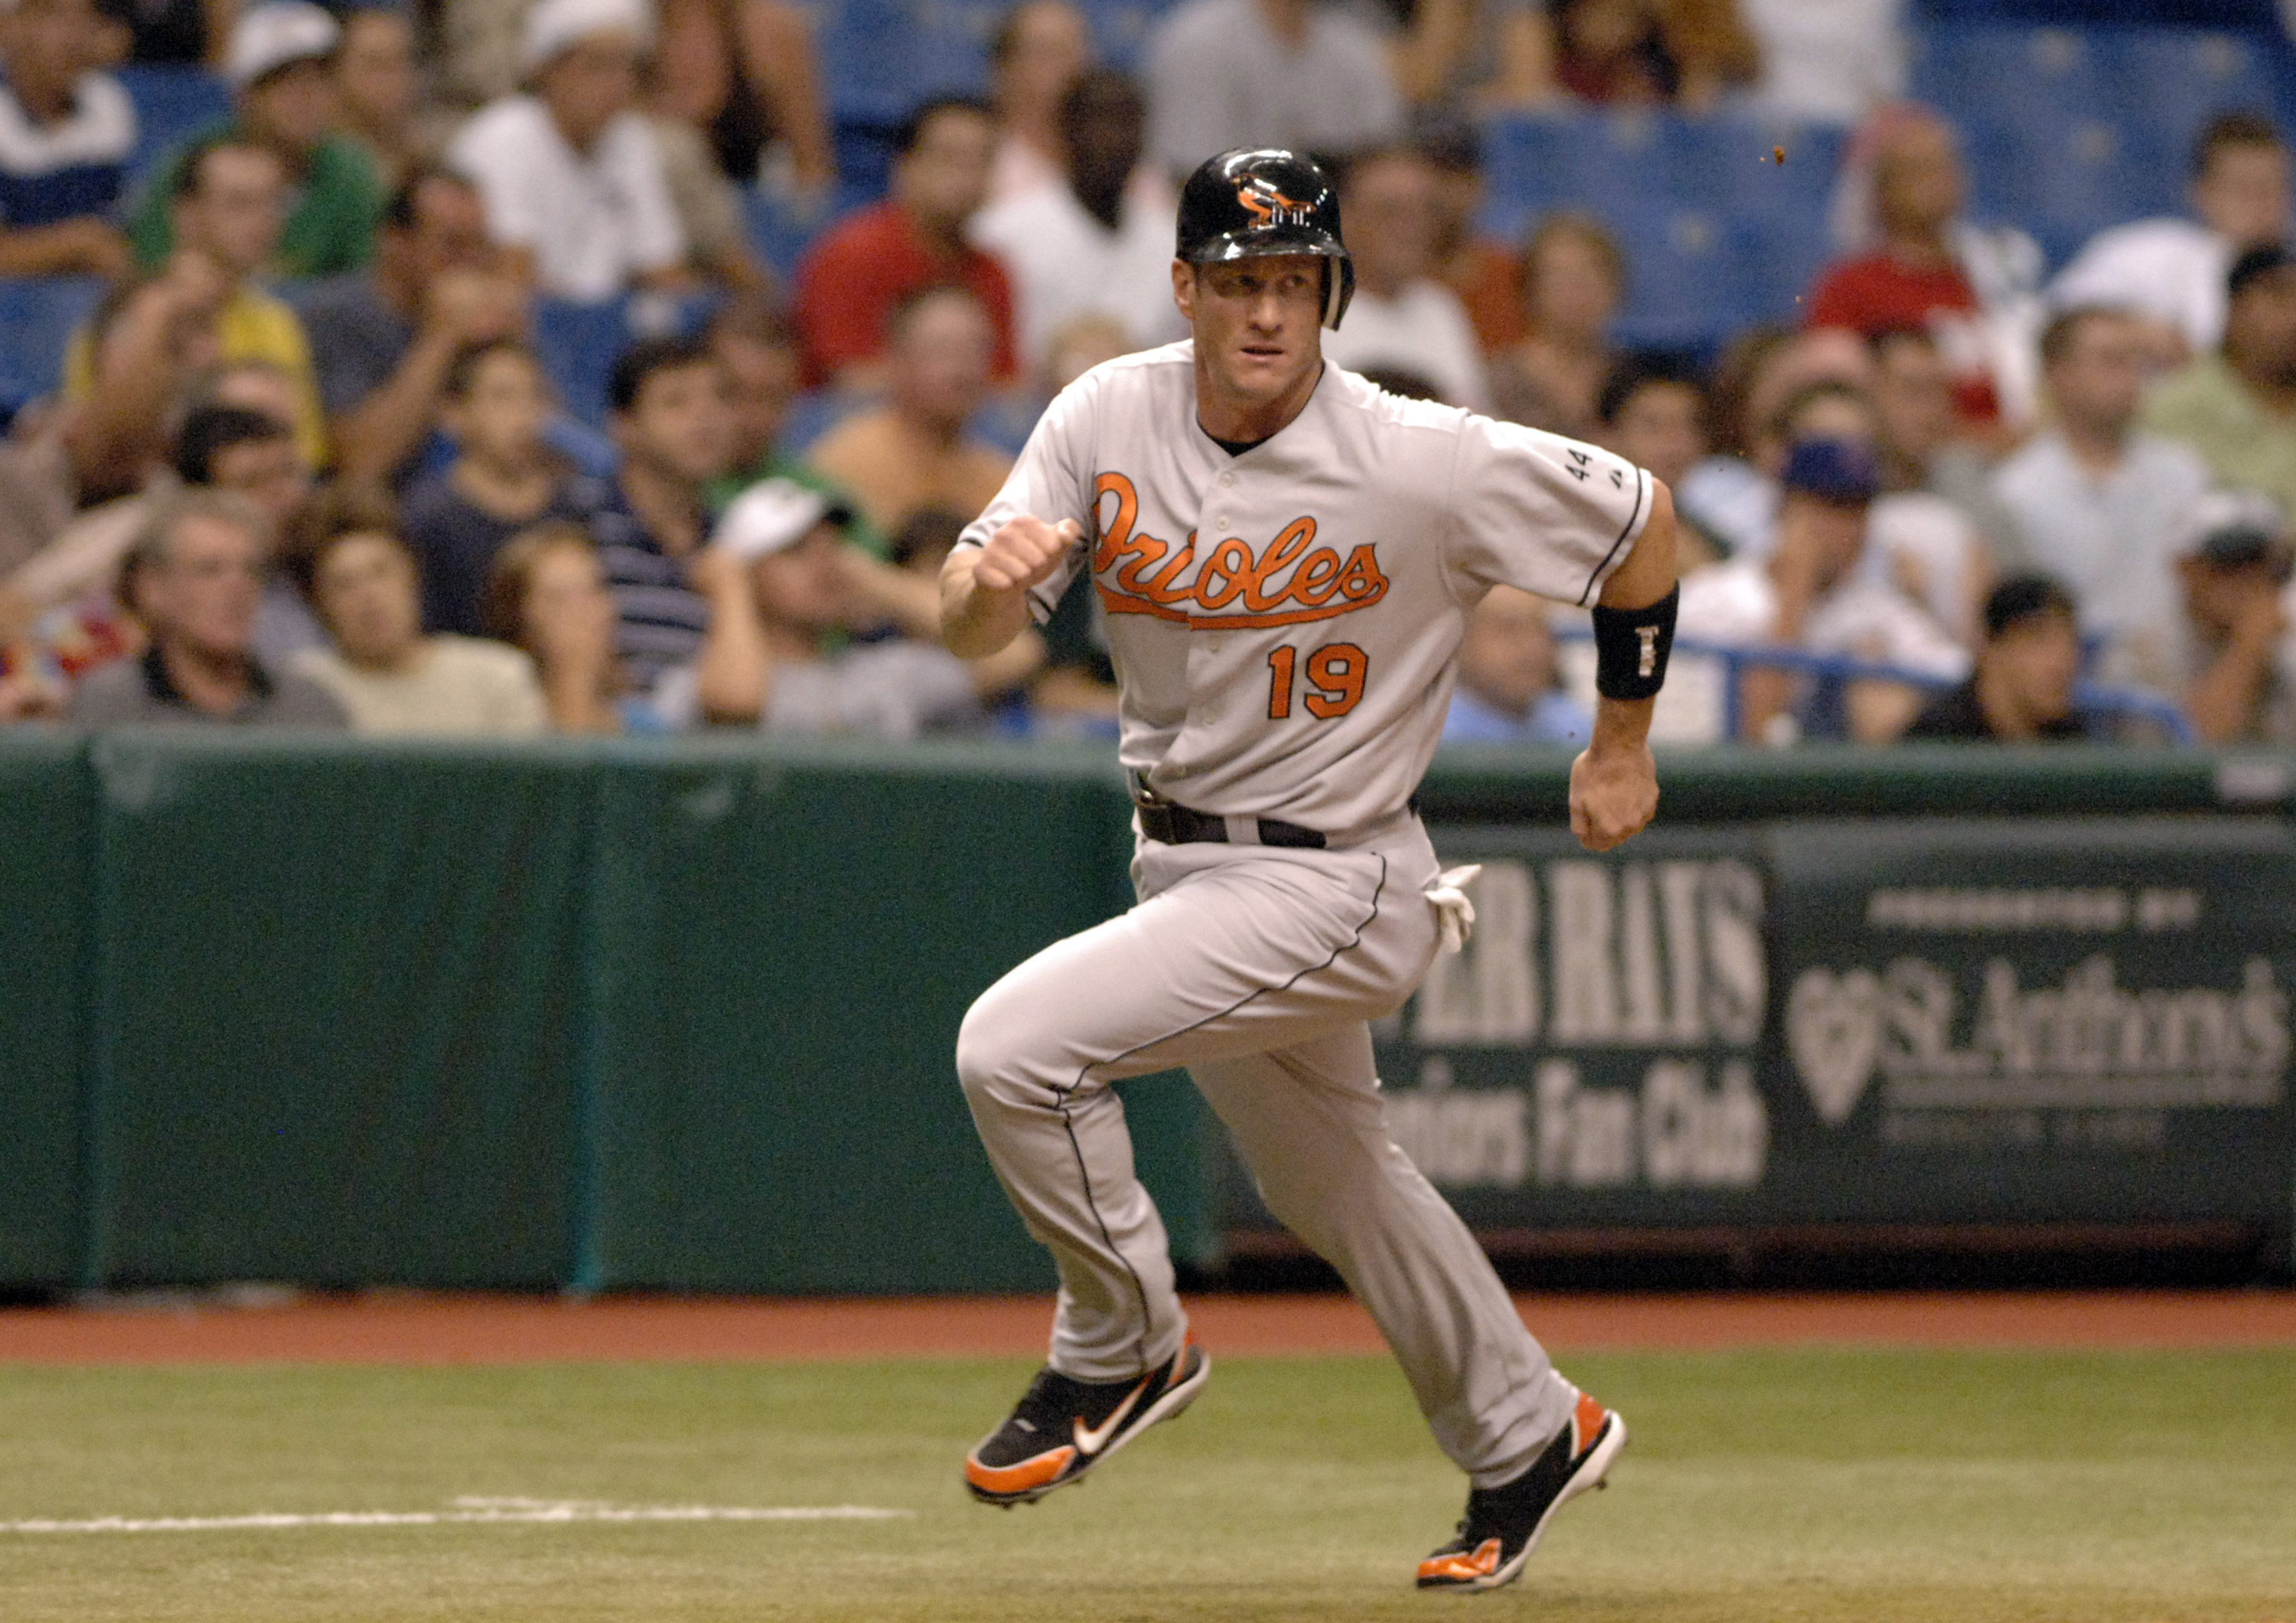 Baltimore Orioles first baseman Jeff Conine rounds third base and scores  against the Tampa Bay Devil Rays at Tropicana Field in St. Petersburg, Florida on July 22, 2006.  (Photo by A. Messerschmidt/Getty Images)